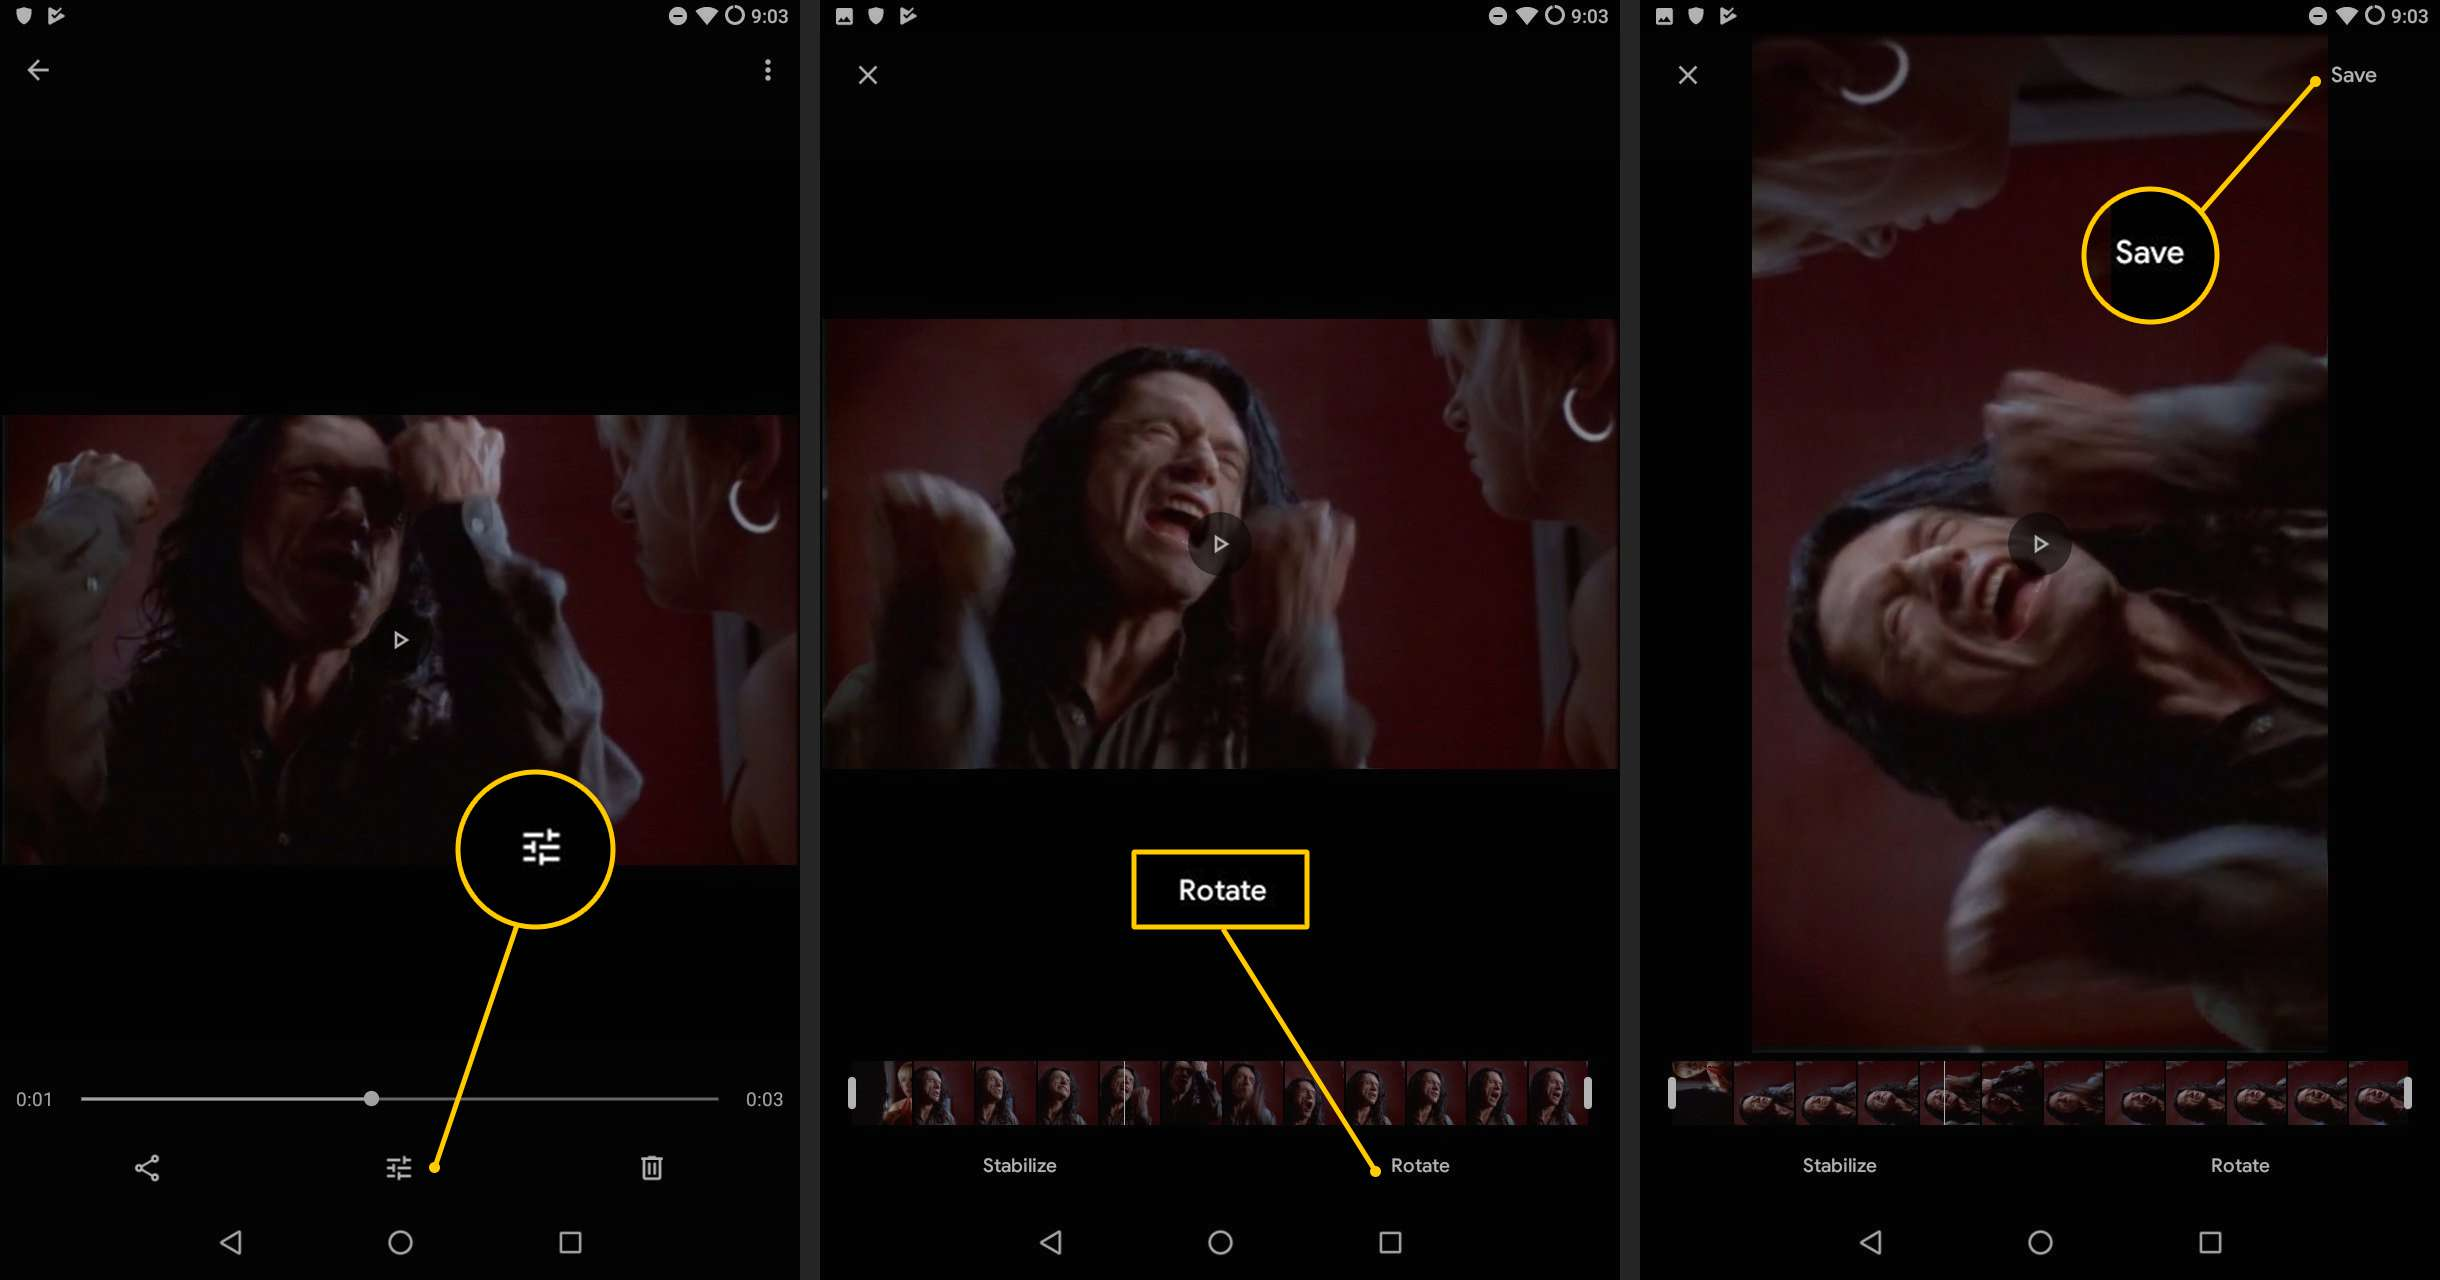 How to Rotate Videos On Android